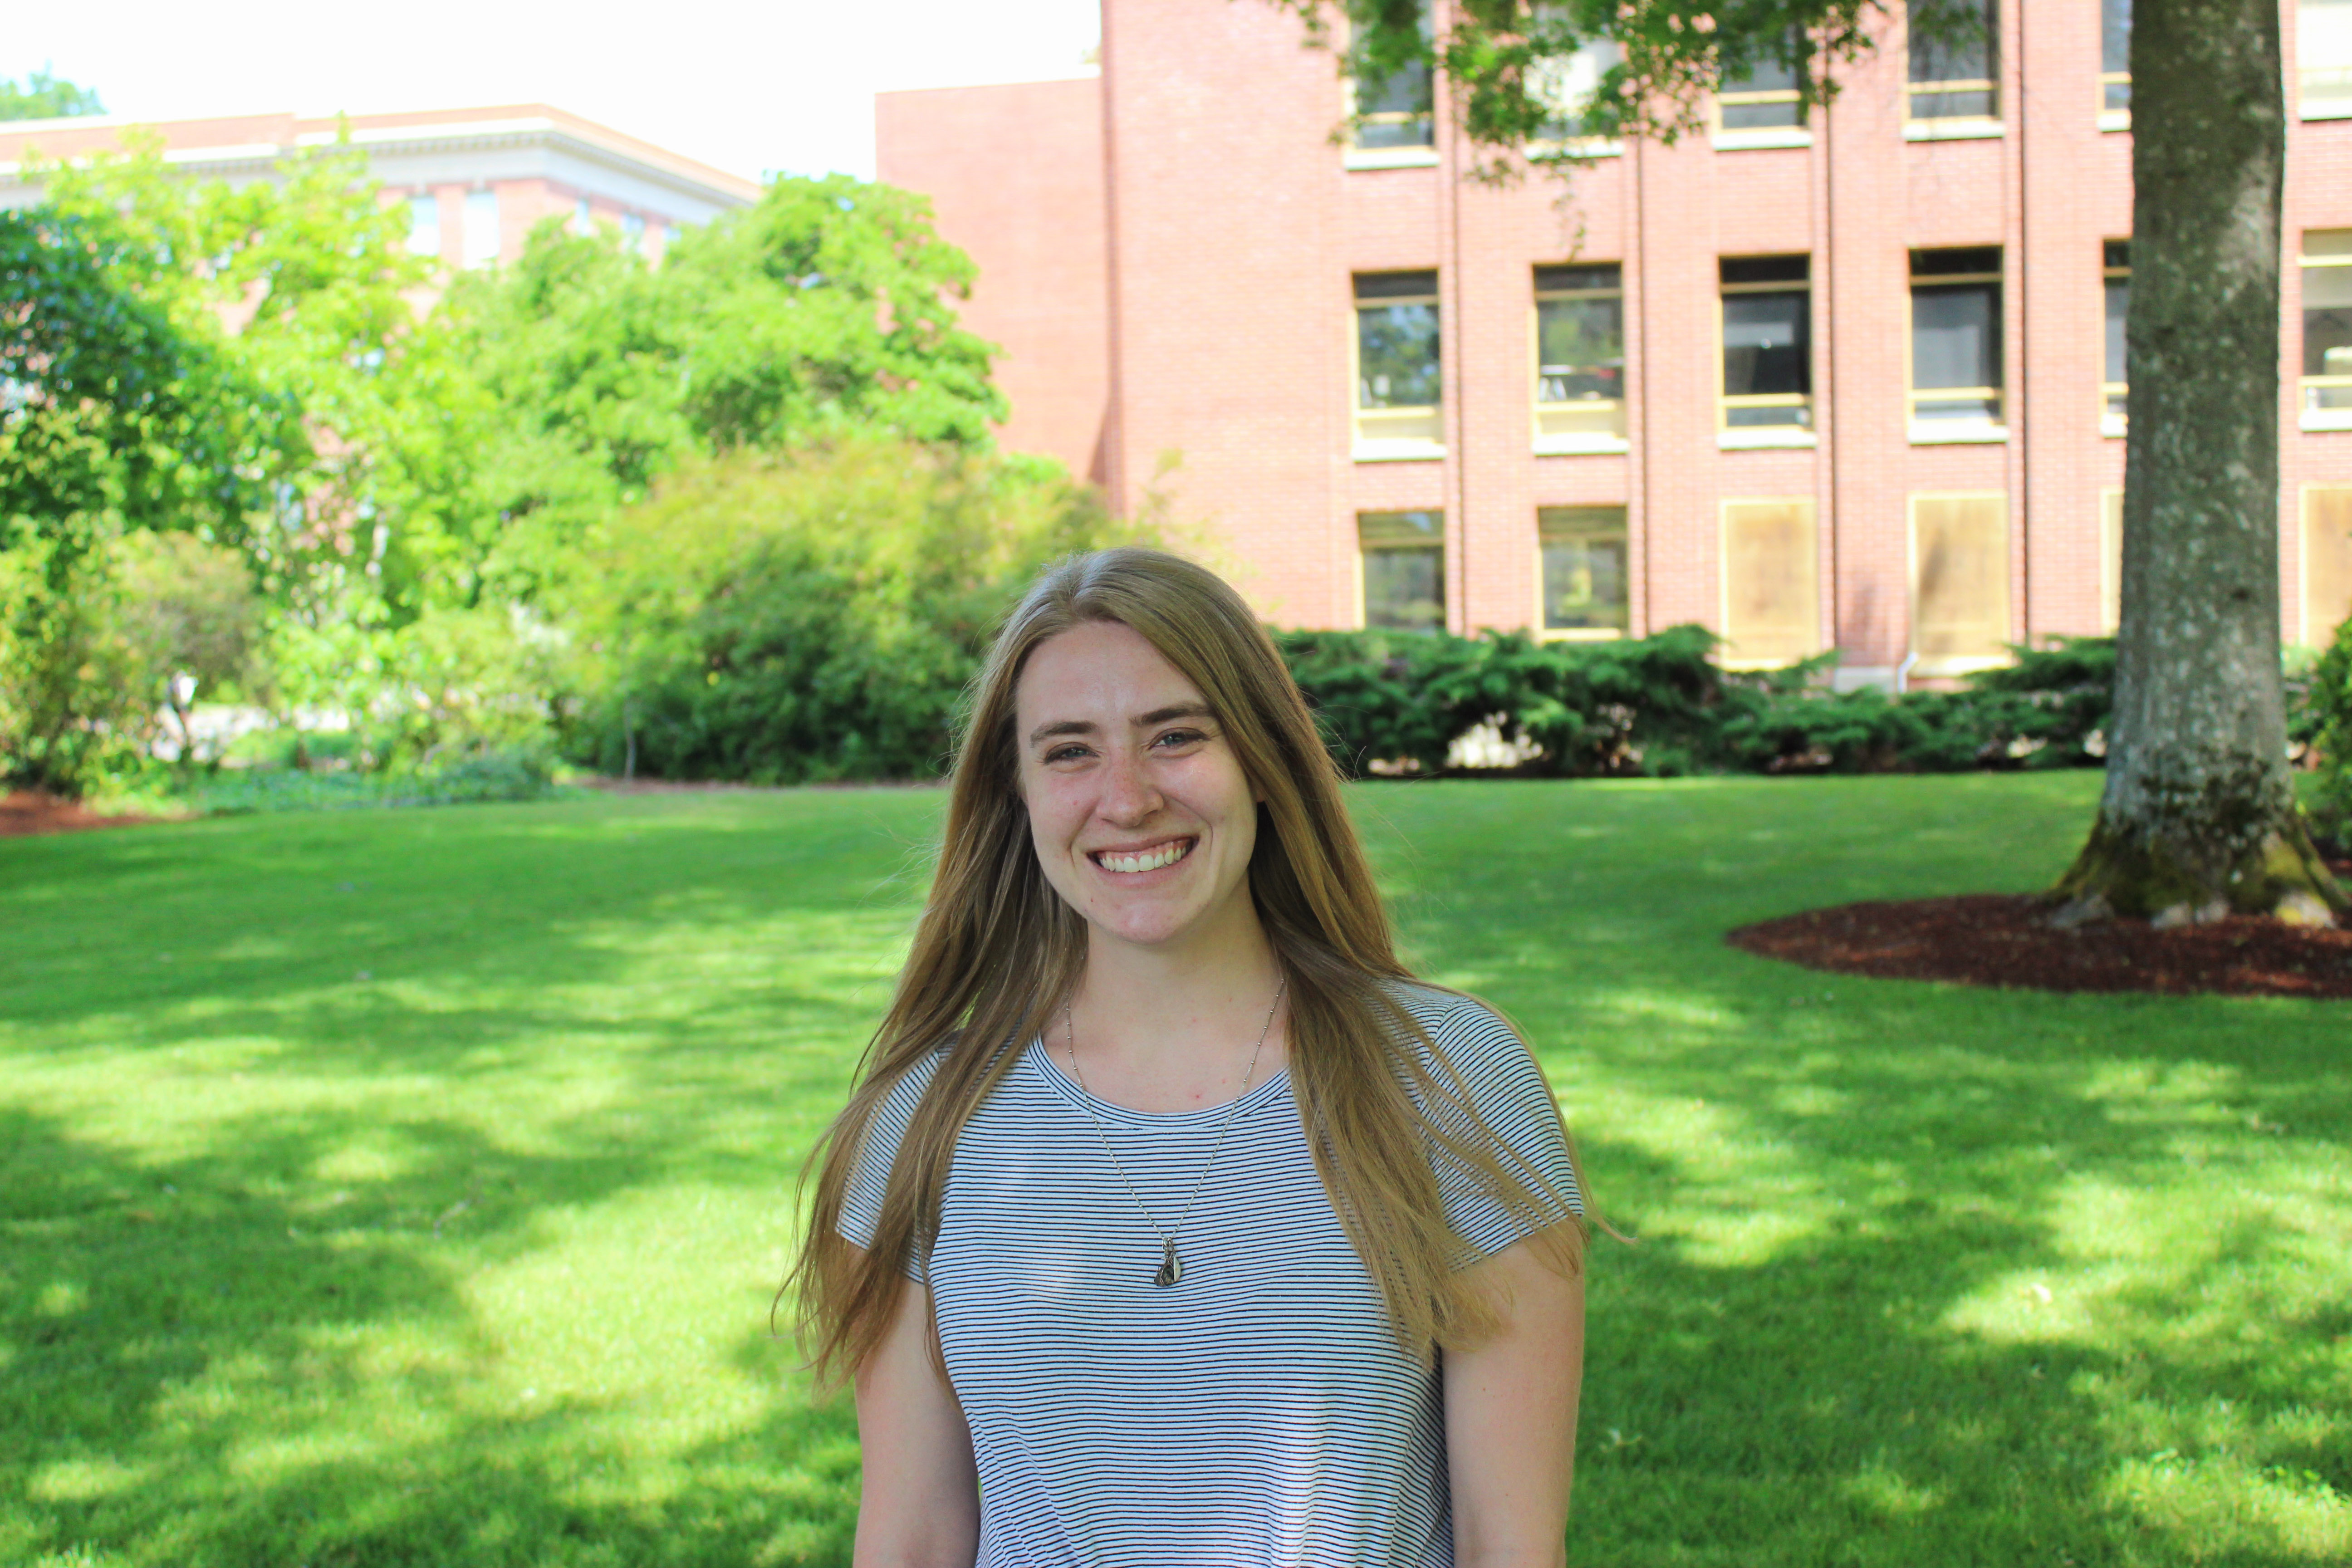 Microbiology senior's quest for challenge leads to space research